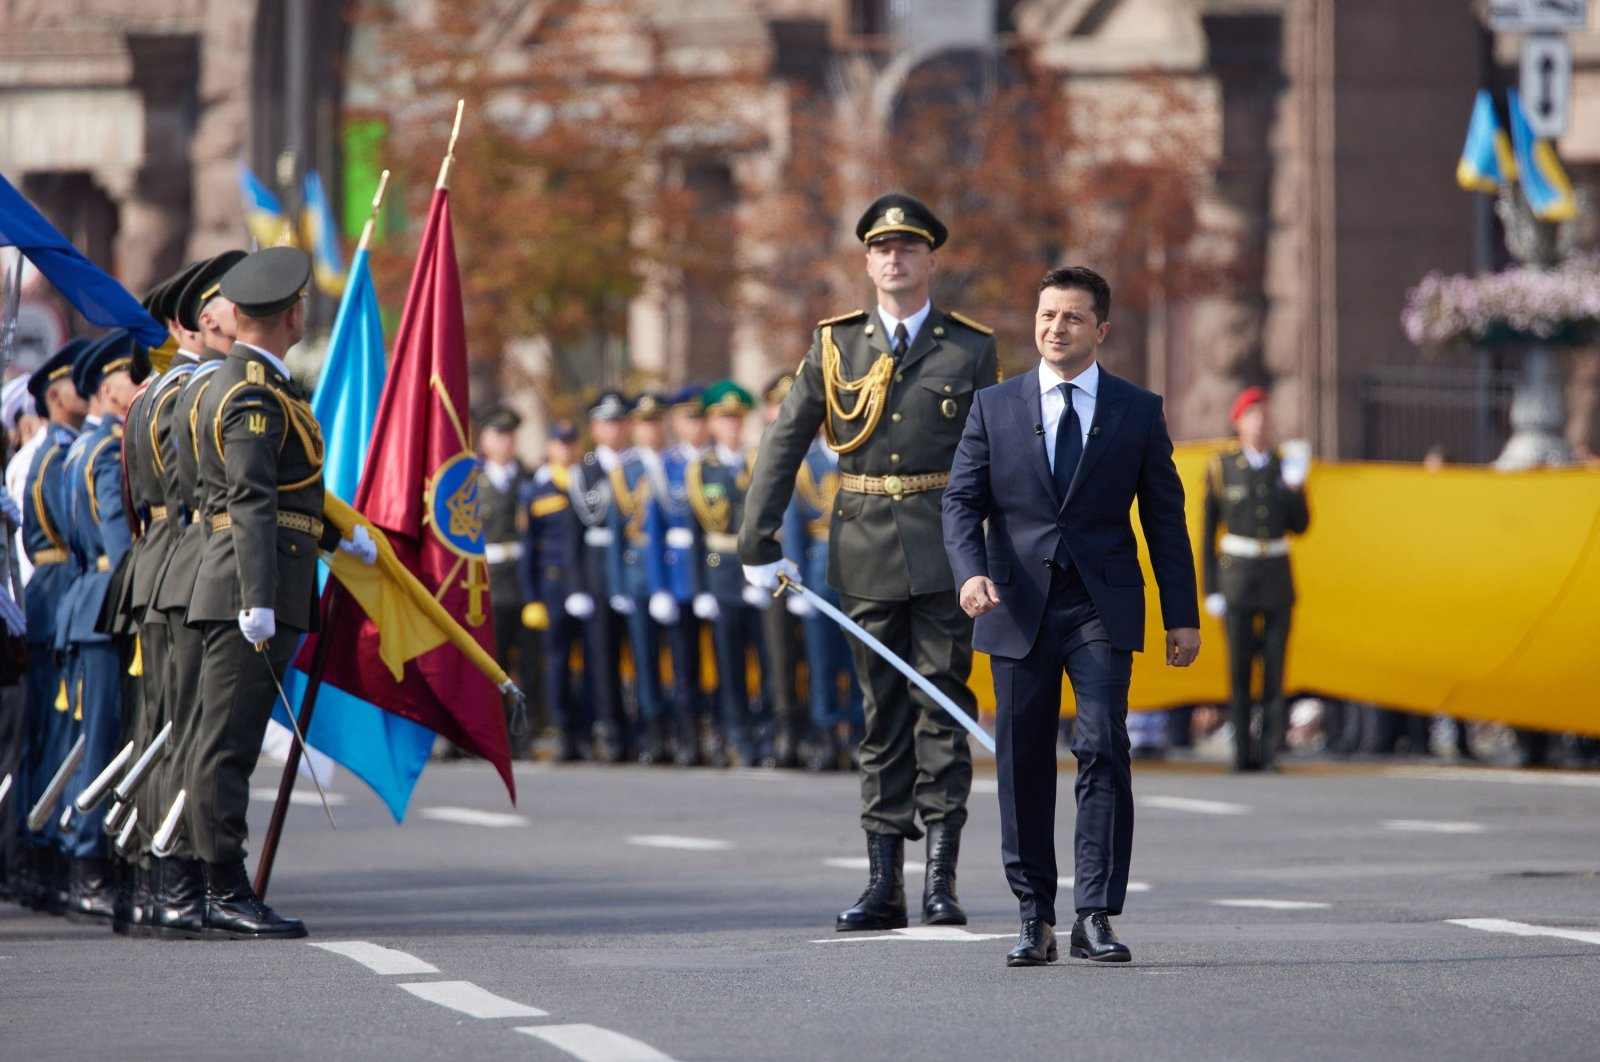 Ukrainian President Volodymyr Zelensky walks during the Independence Day military parade in Kyiv, Ukraine, Aug. 24, 2021. (Ukrainian Presidential Press Service via AFP)